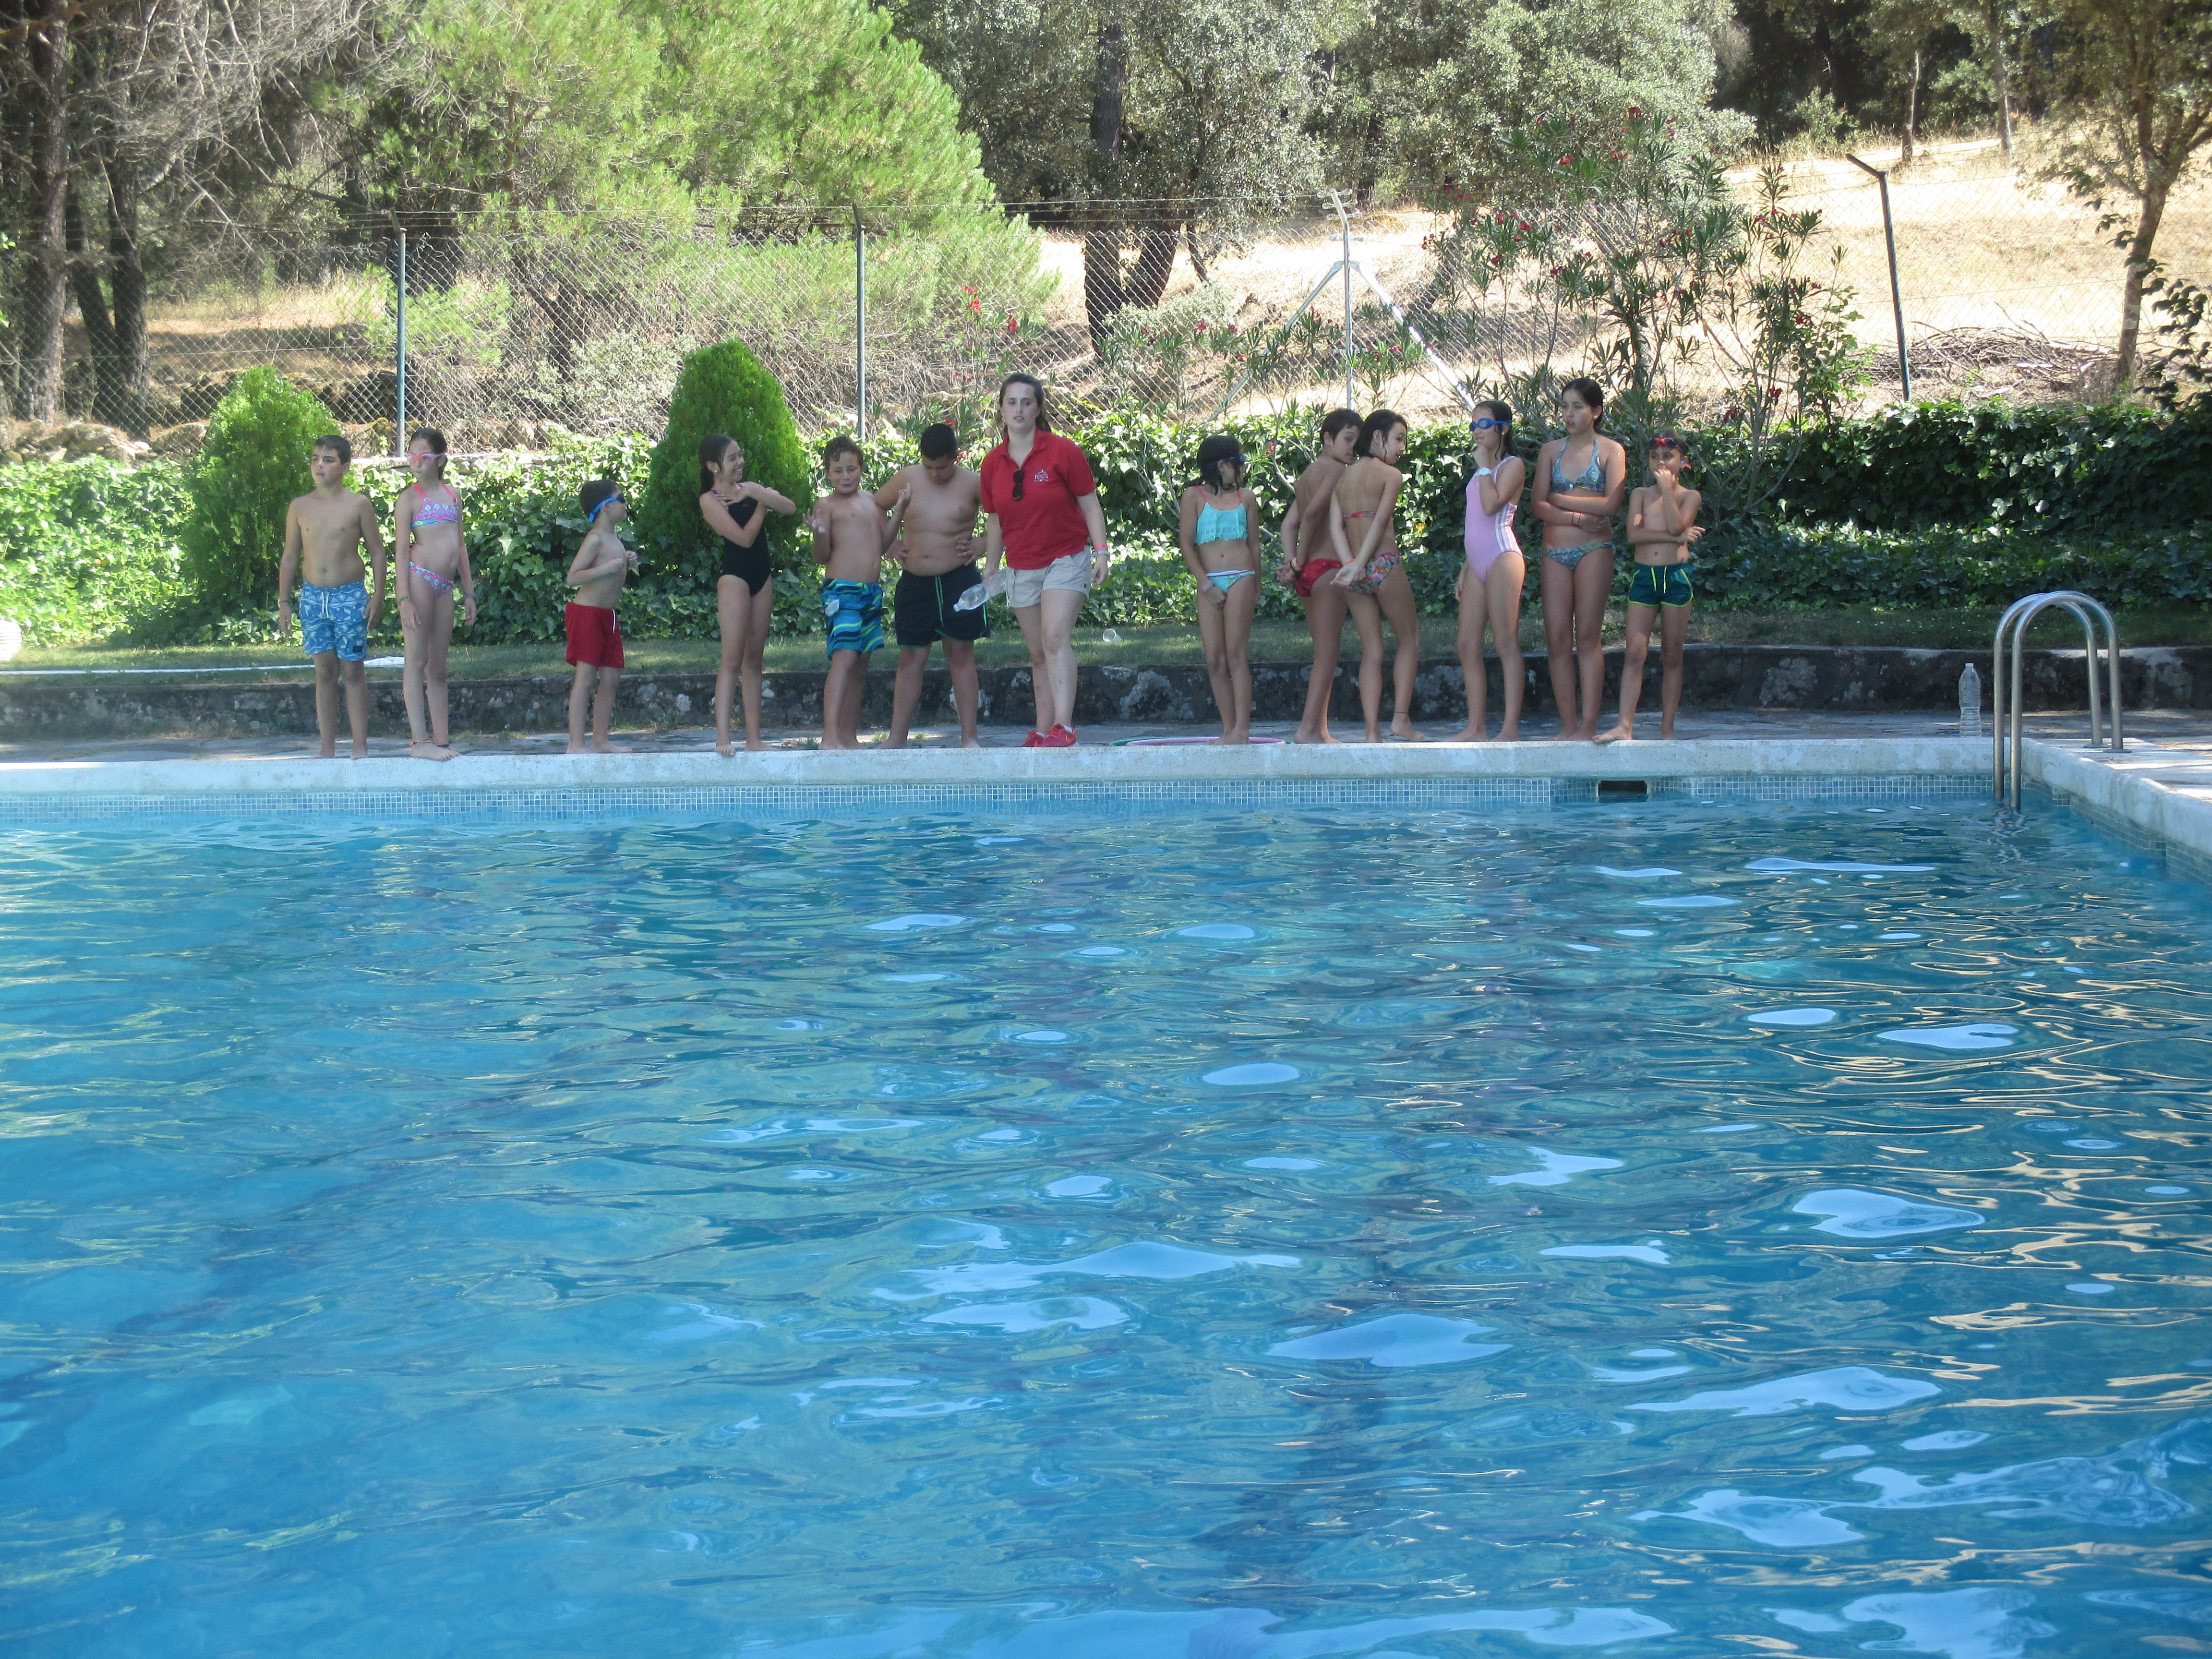 Swimming pool fun at Family Camp Gredos